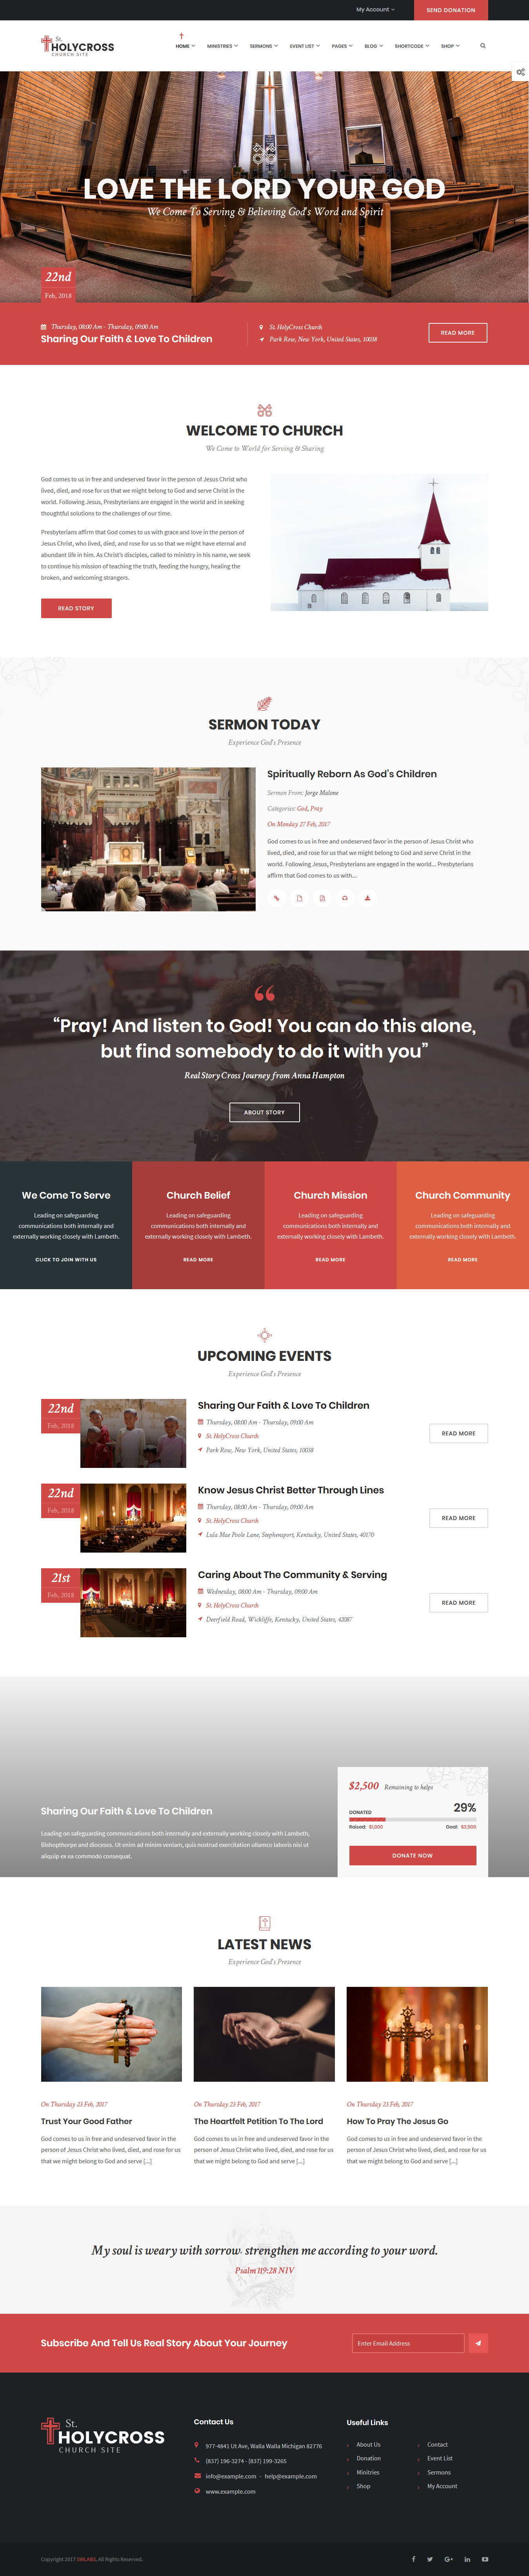 holly cross best premium church wordpress theme - 10+ Best Premium Church WordPress Themes